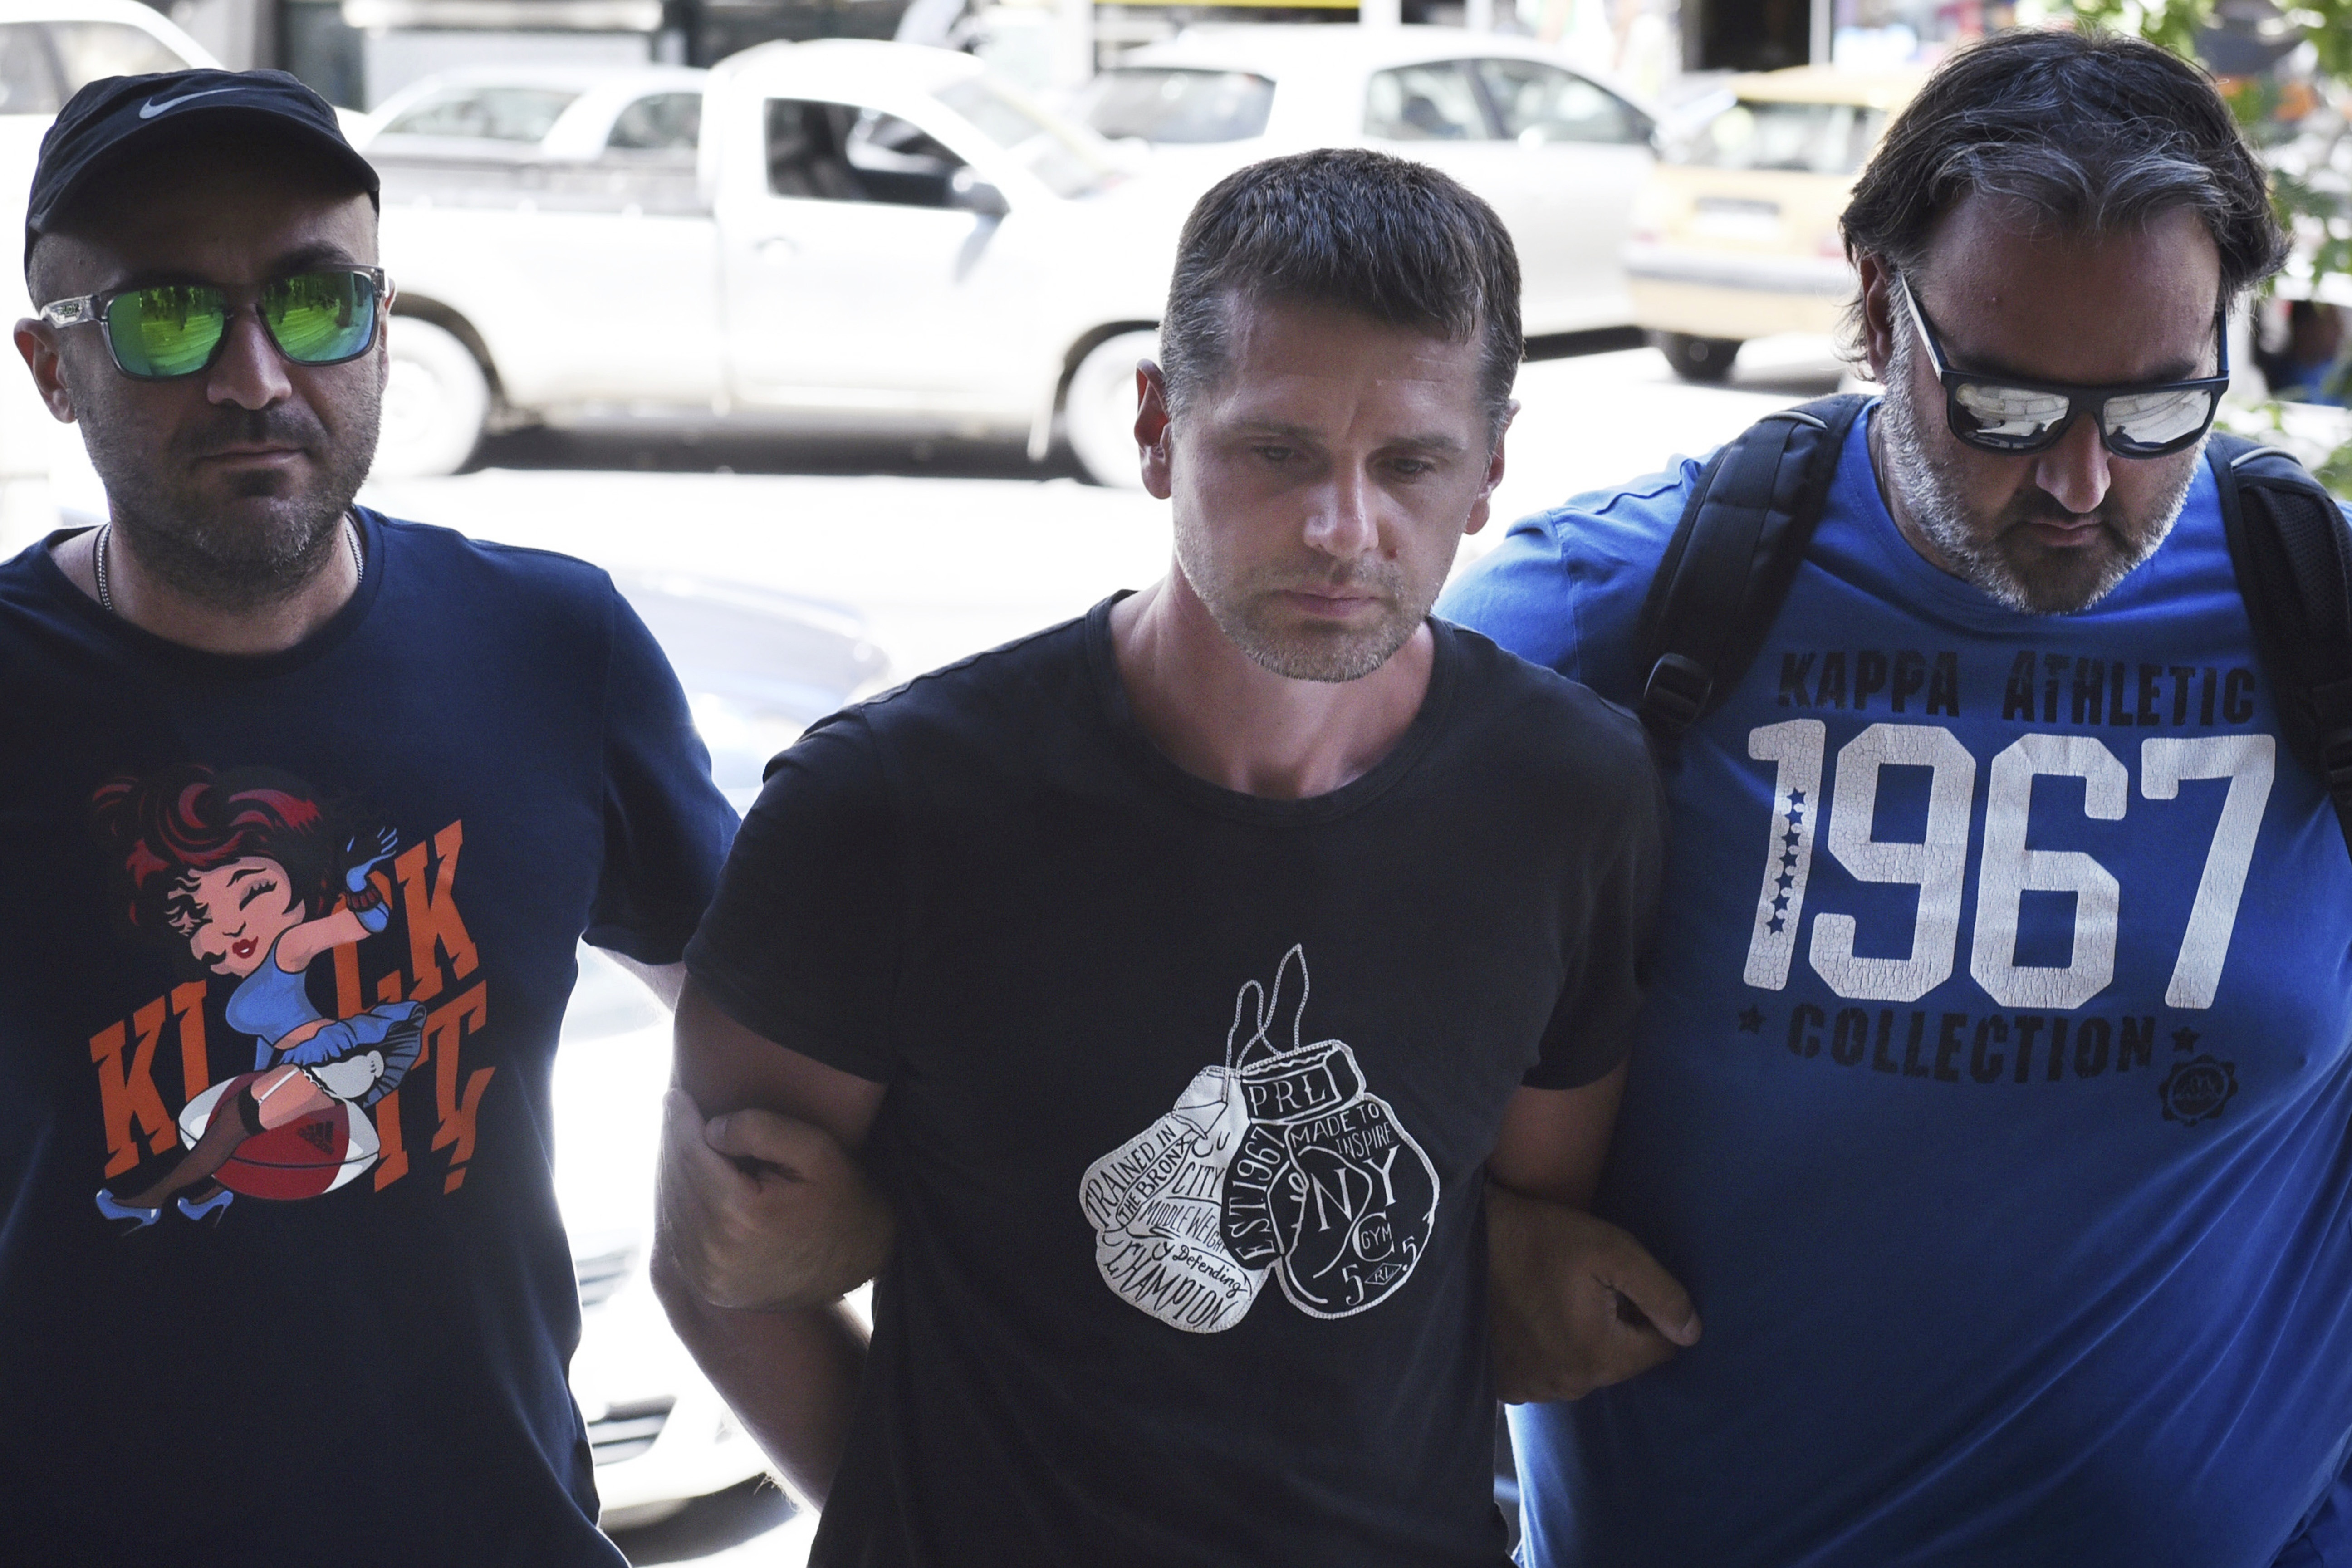 In this Wednesday, July 26, 2017 file photo a Russian man identified as Alexander Vinnik, center, is escorted by police officers to the courthouse at the northern Greek city of Thessaloniki. Vinnik's lawyer, Xanthippe Moyssidou, told The Associated Press on Tuesday Sept. 19, 2017, that Vinnik was also wanted in Russia on separate fraud charges. He says he has told Greek authorities he would not challenge the request to extradite Vinnik to Russia. (Giannis Papanikos/AP)